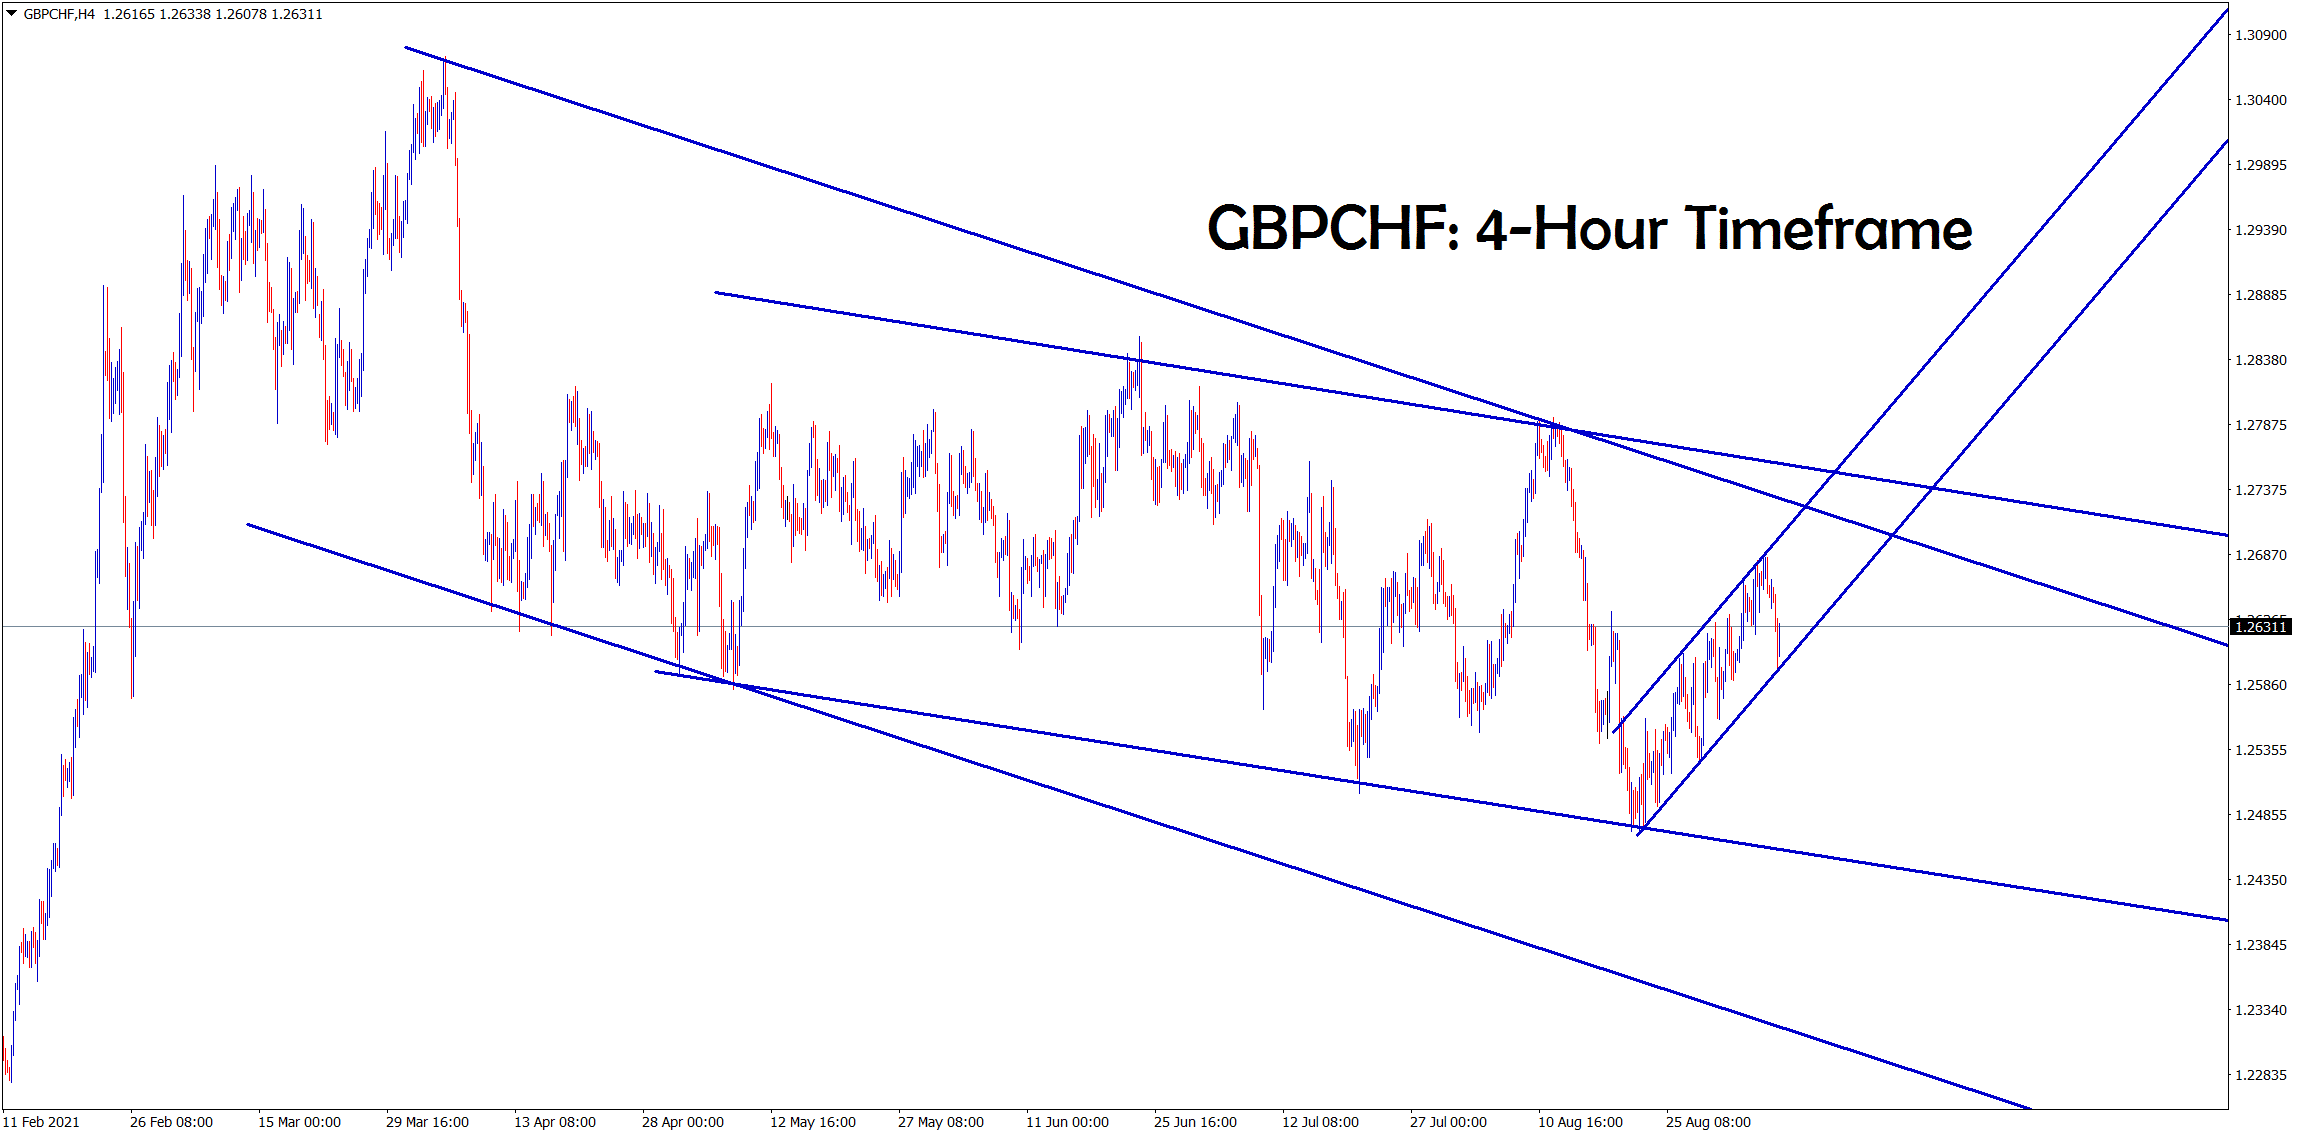 GBPCHF is moving in a minor ascending channel now